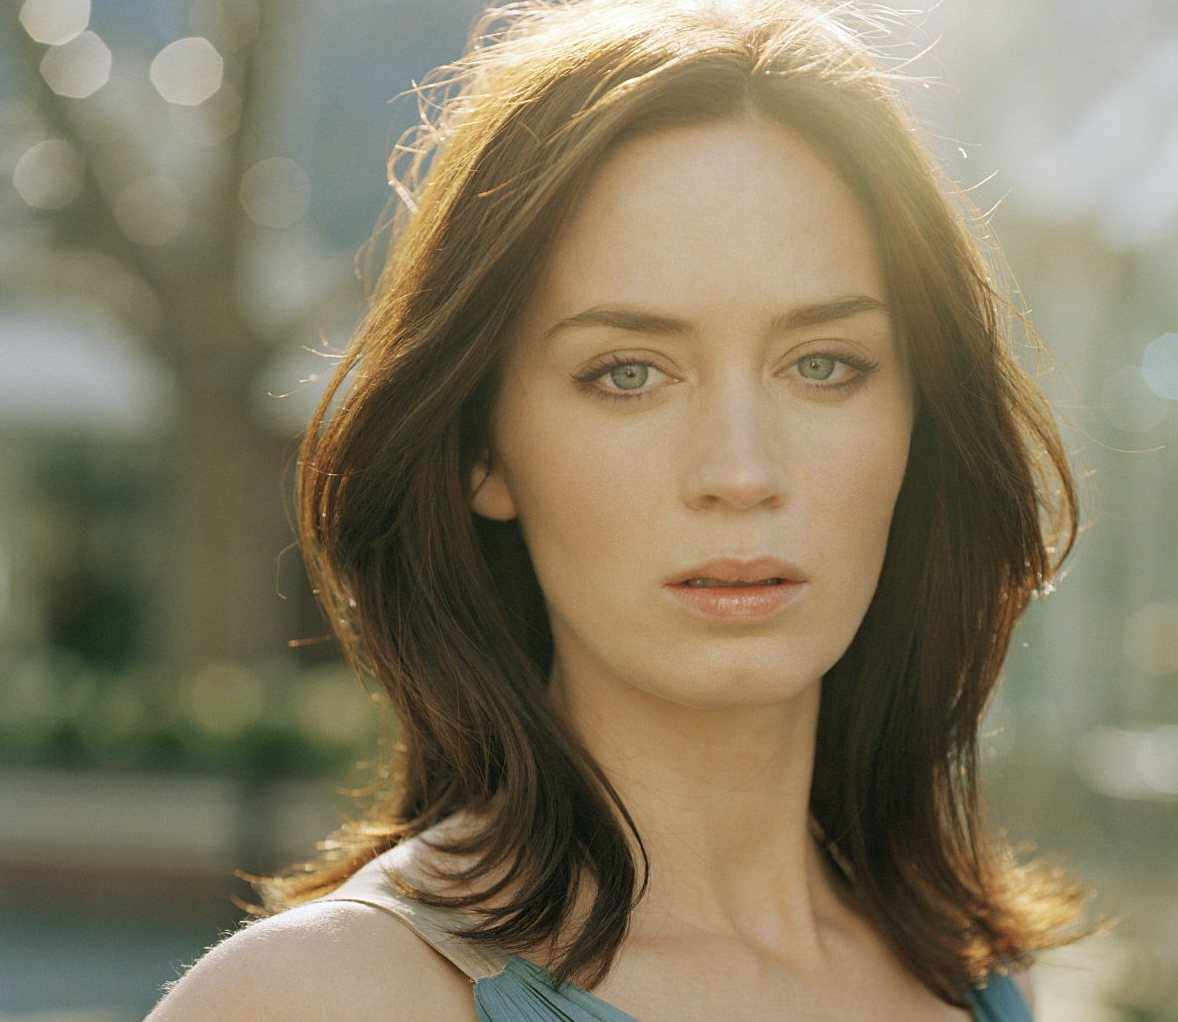 emily blunt is my favorite actress and i think she Emily Blunt